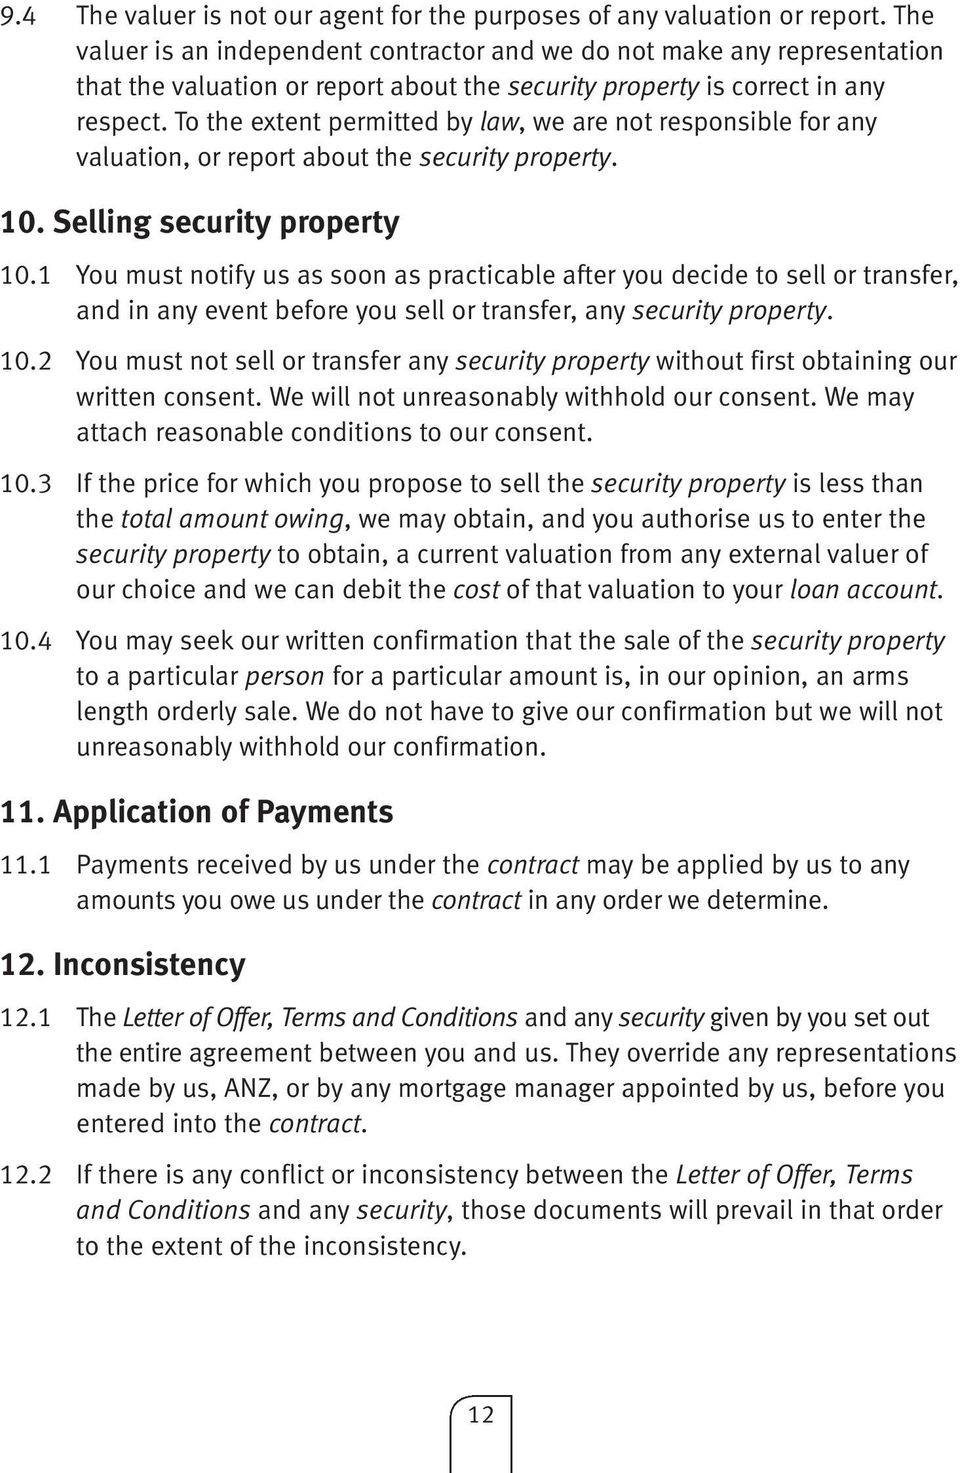 To the extent permitted by law, we are not responsible for any valuation, or report about the security property. 10. Selling security property 10.